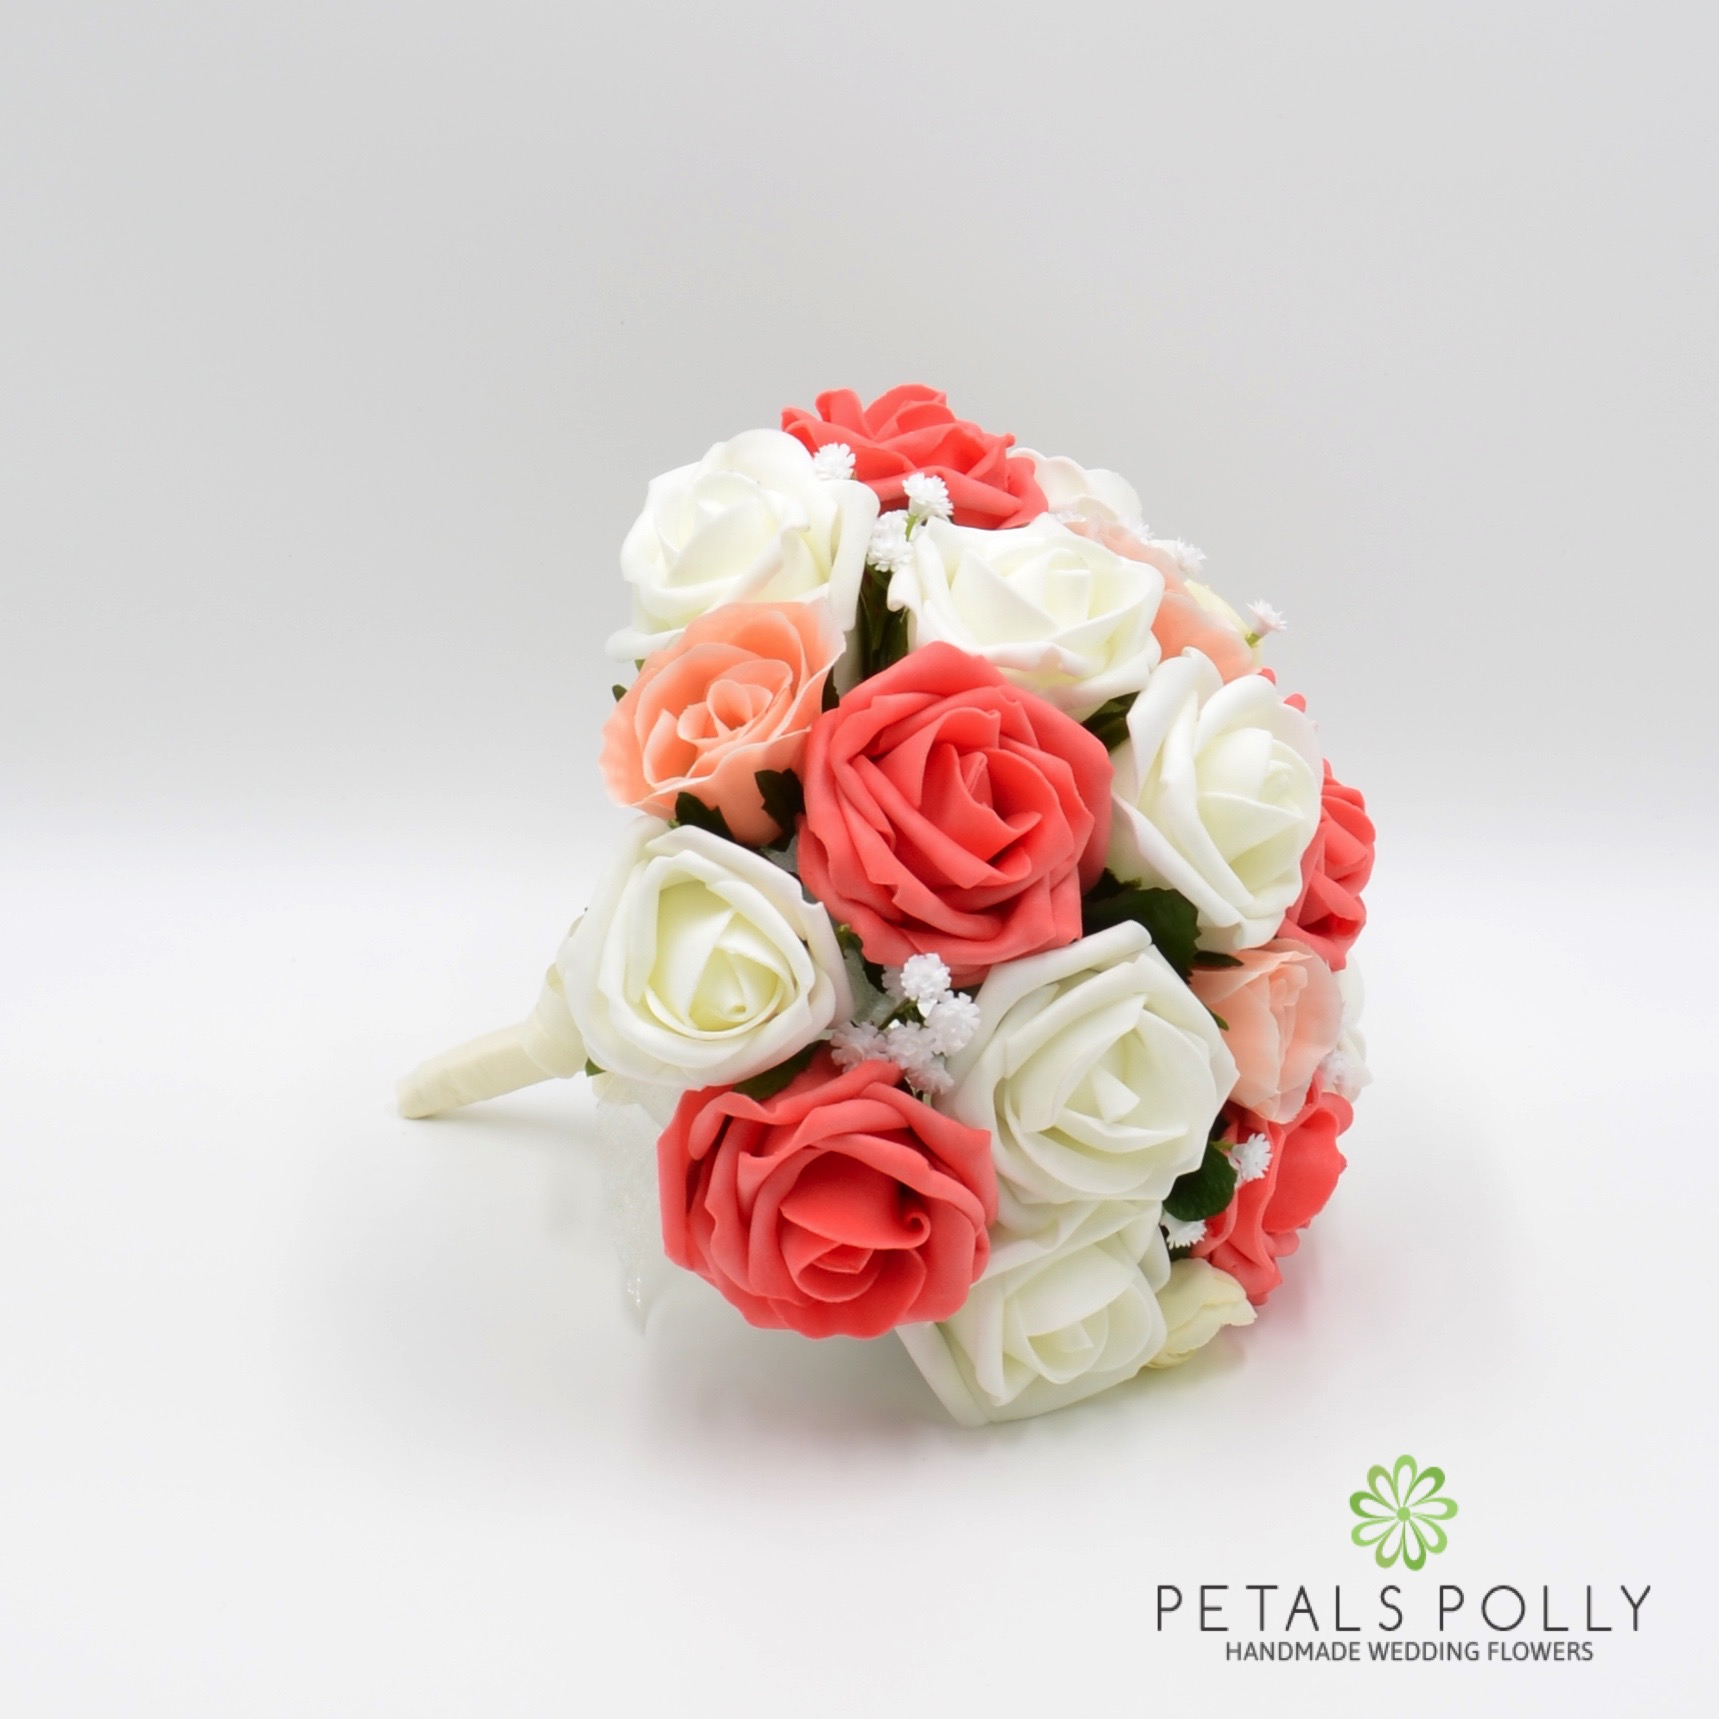 Orange Coral, Peach & Ivory Rose Bridesmaids Posy with Ranunculus -